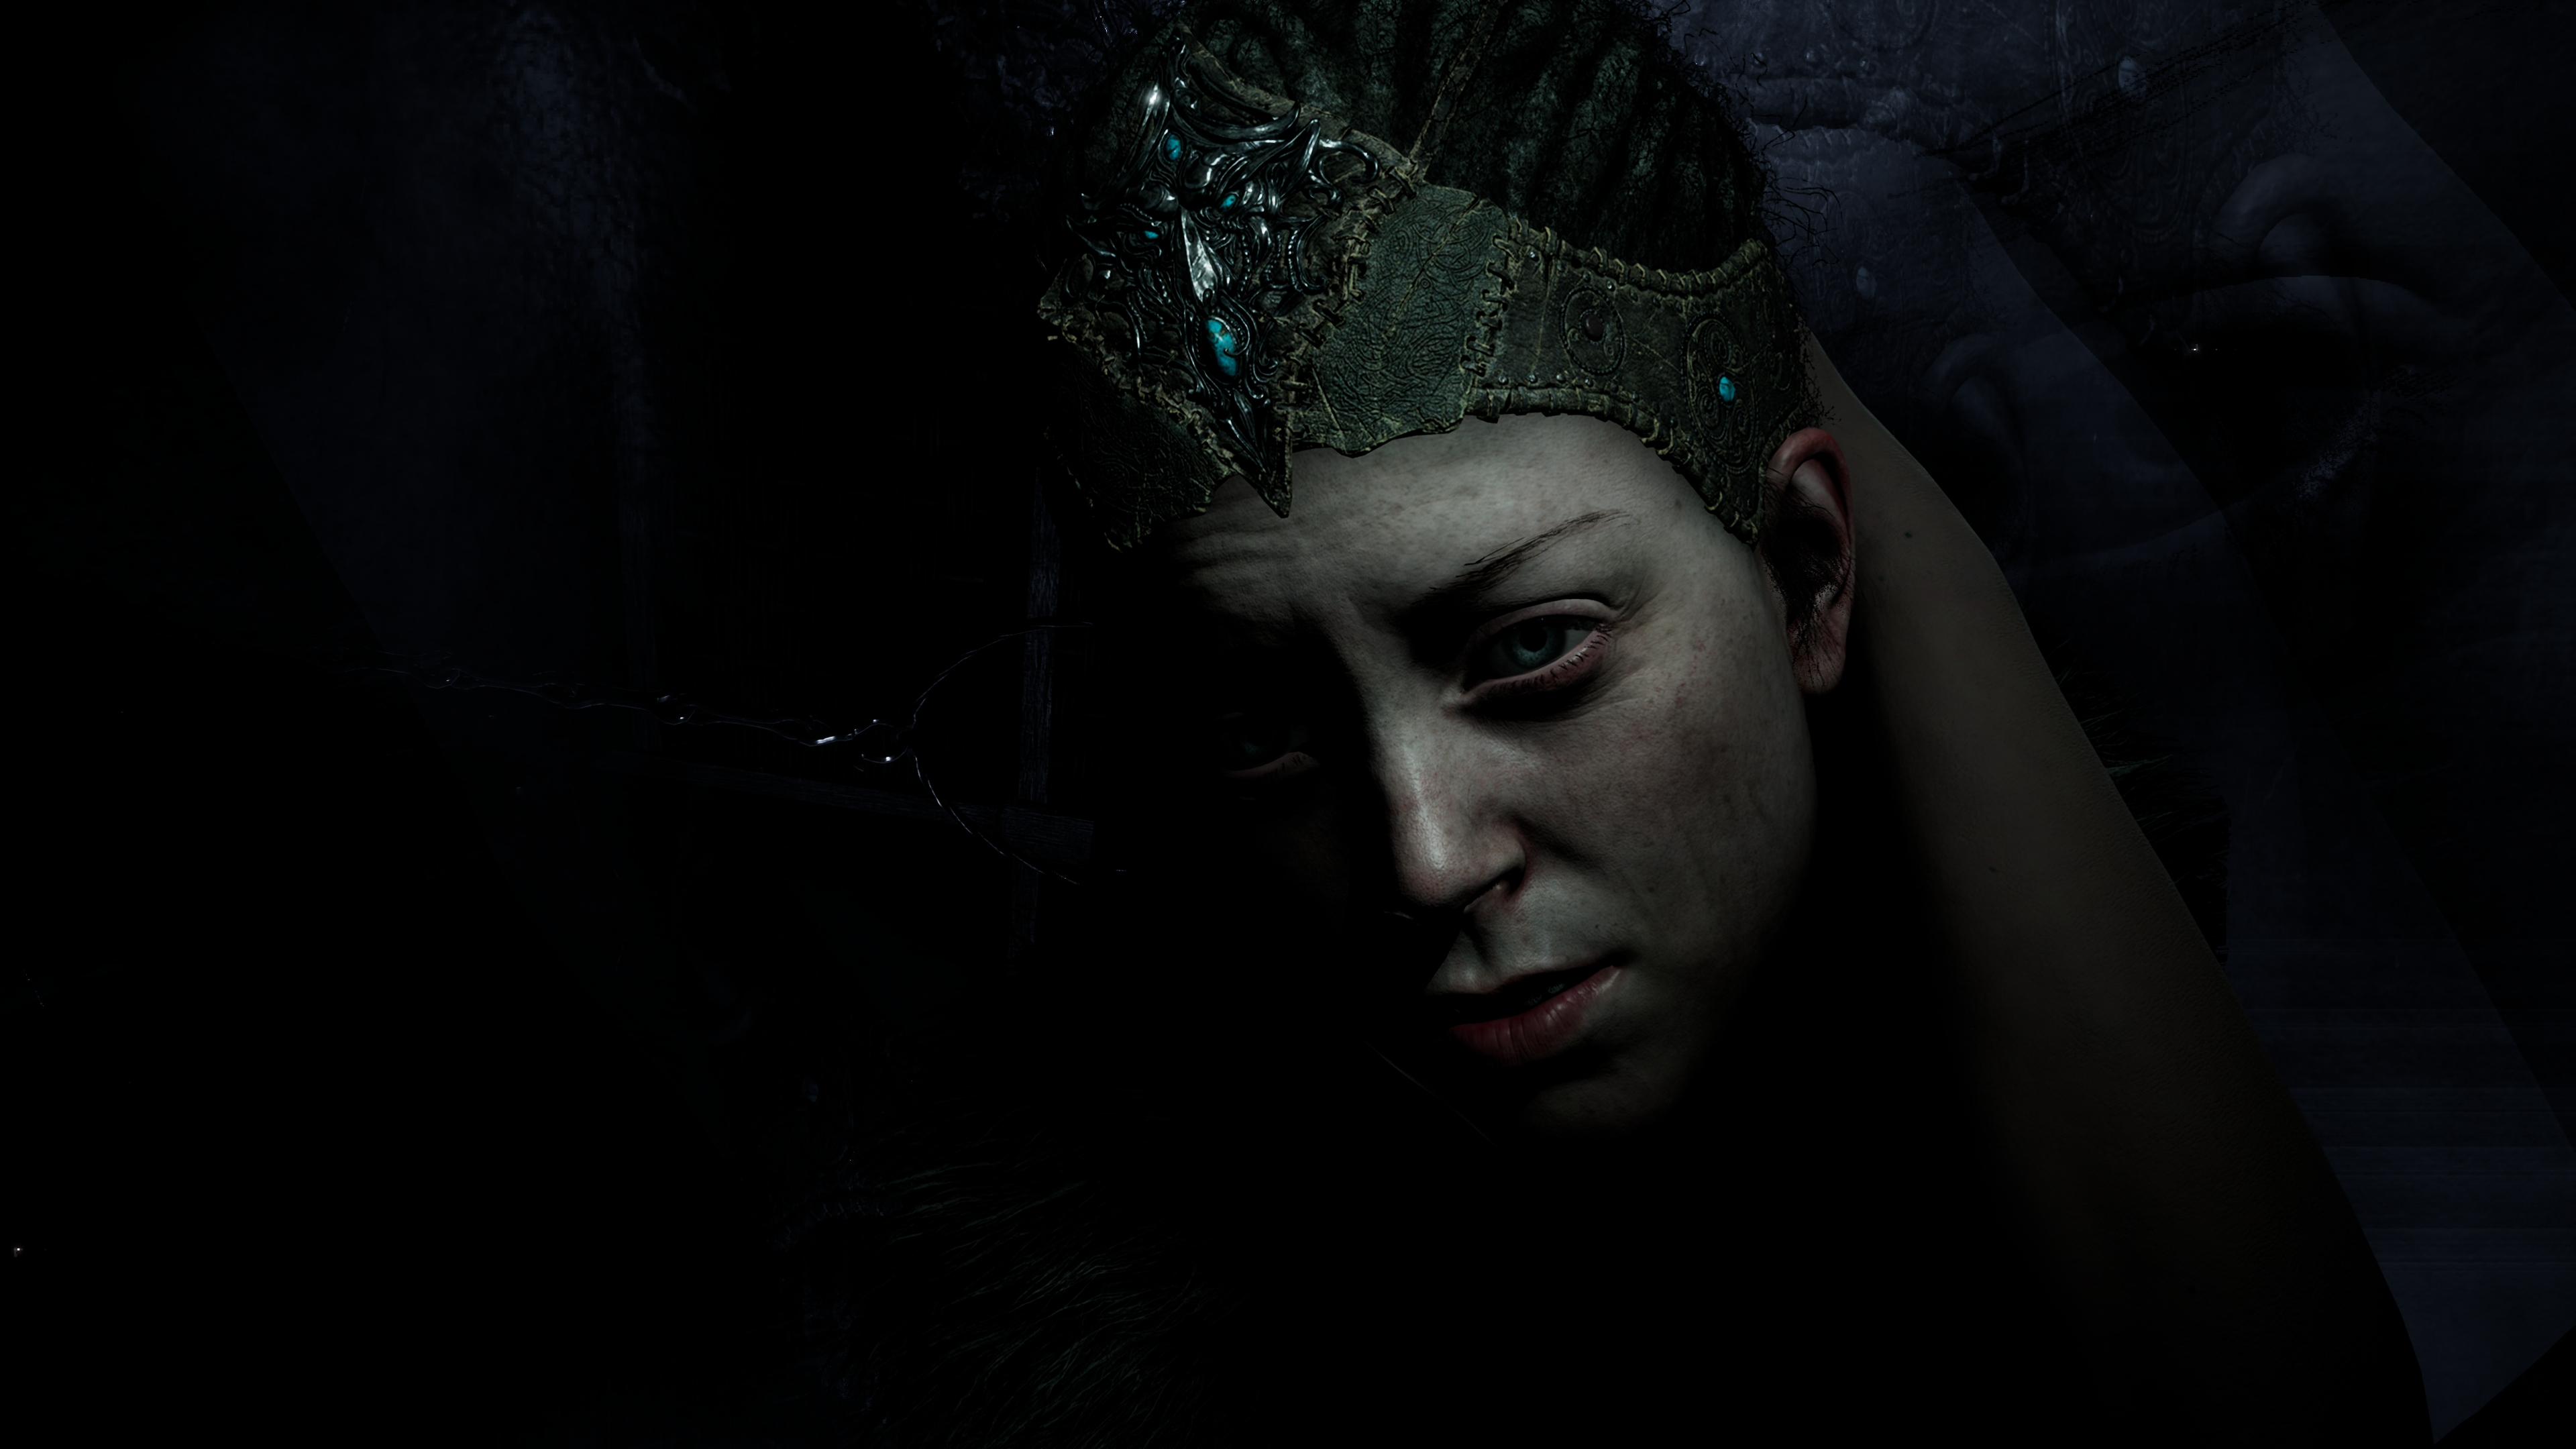 Hellblade senuas sacrifice 4k ultra hd wallpaper background image 3840x2160 id 866156 - Sacrifice wallpaper ...